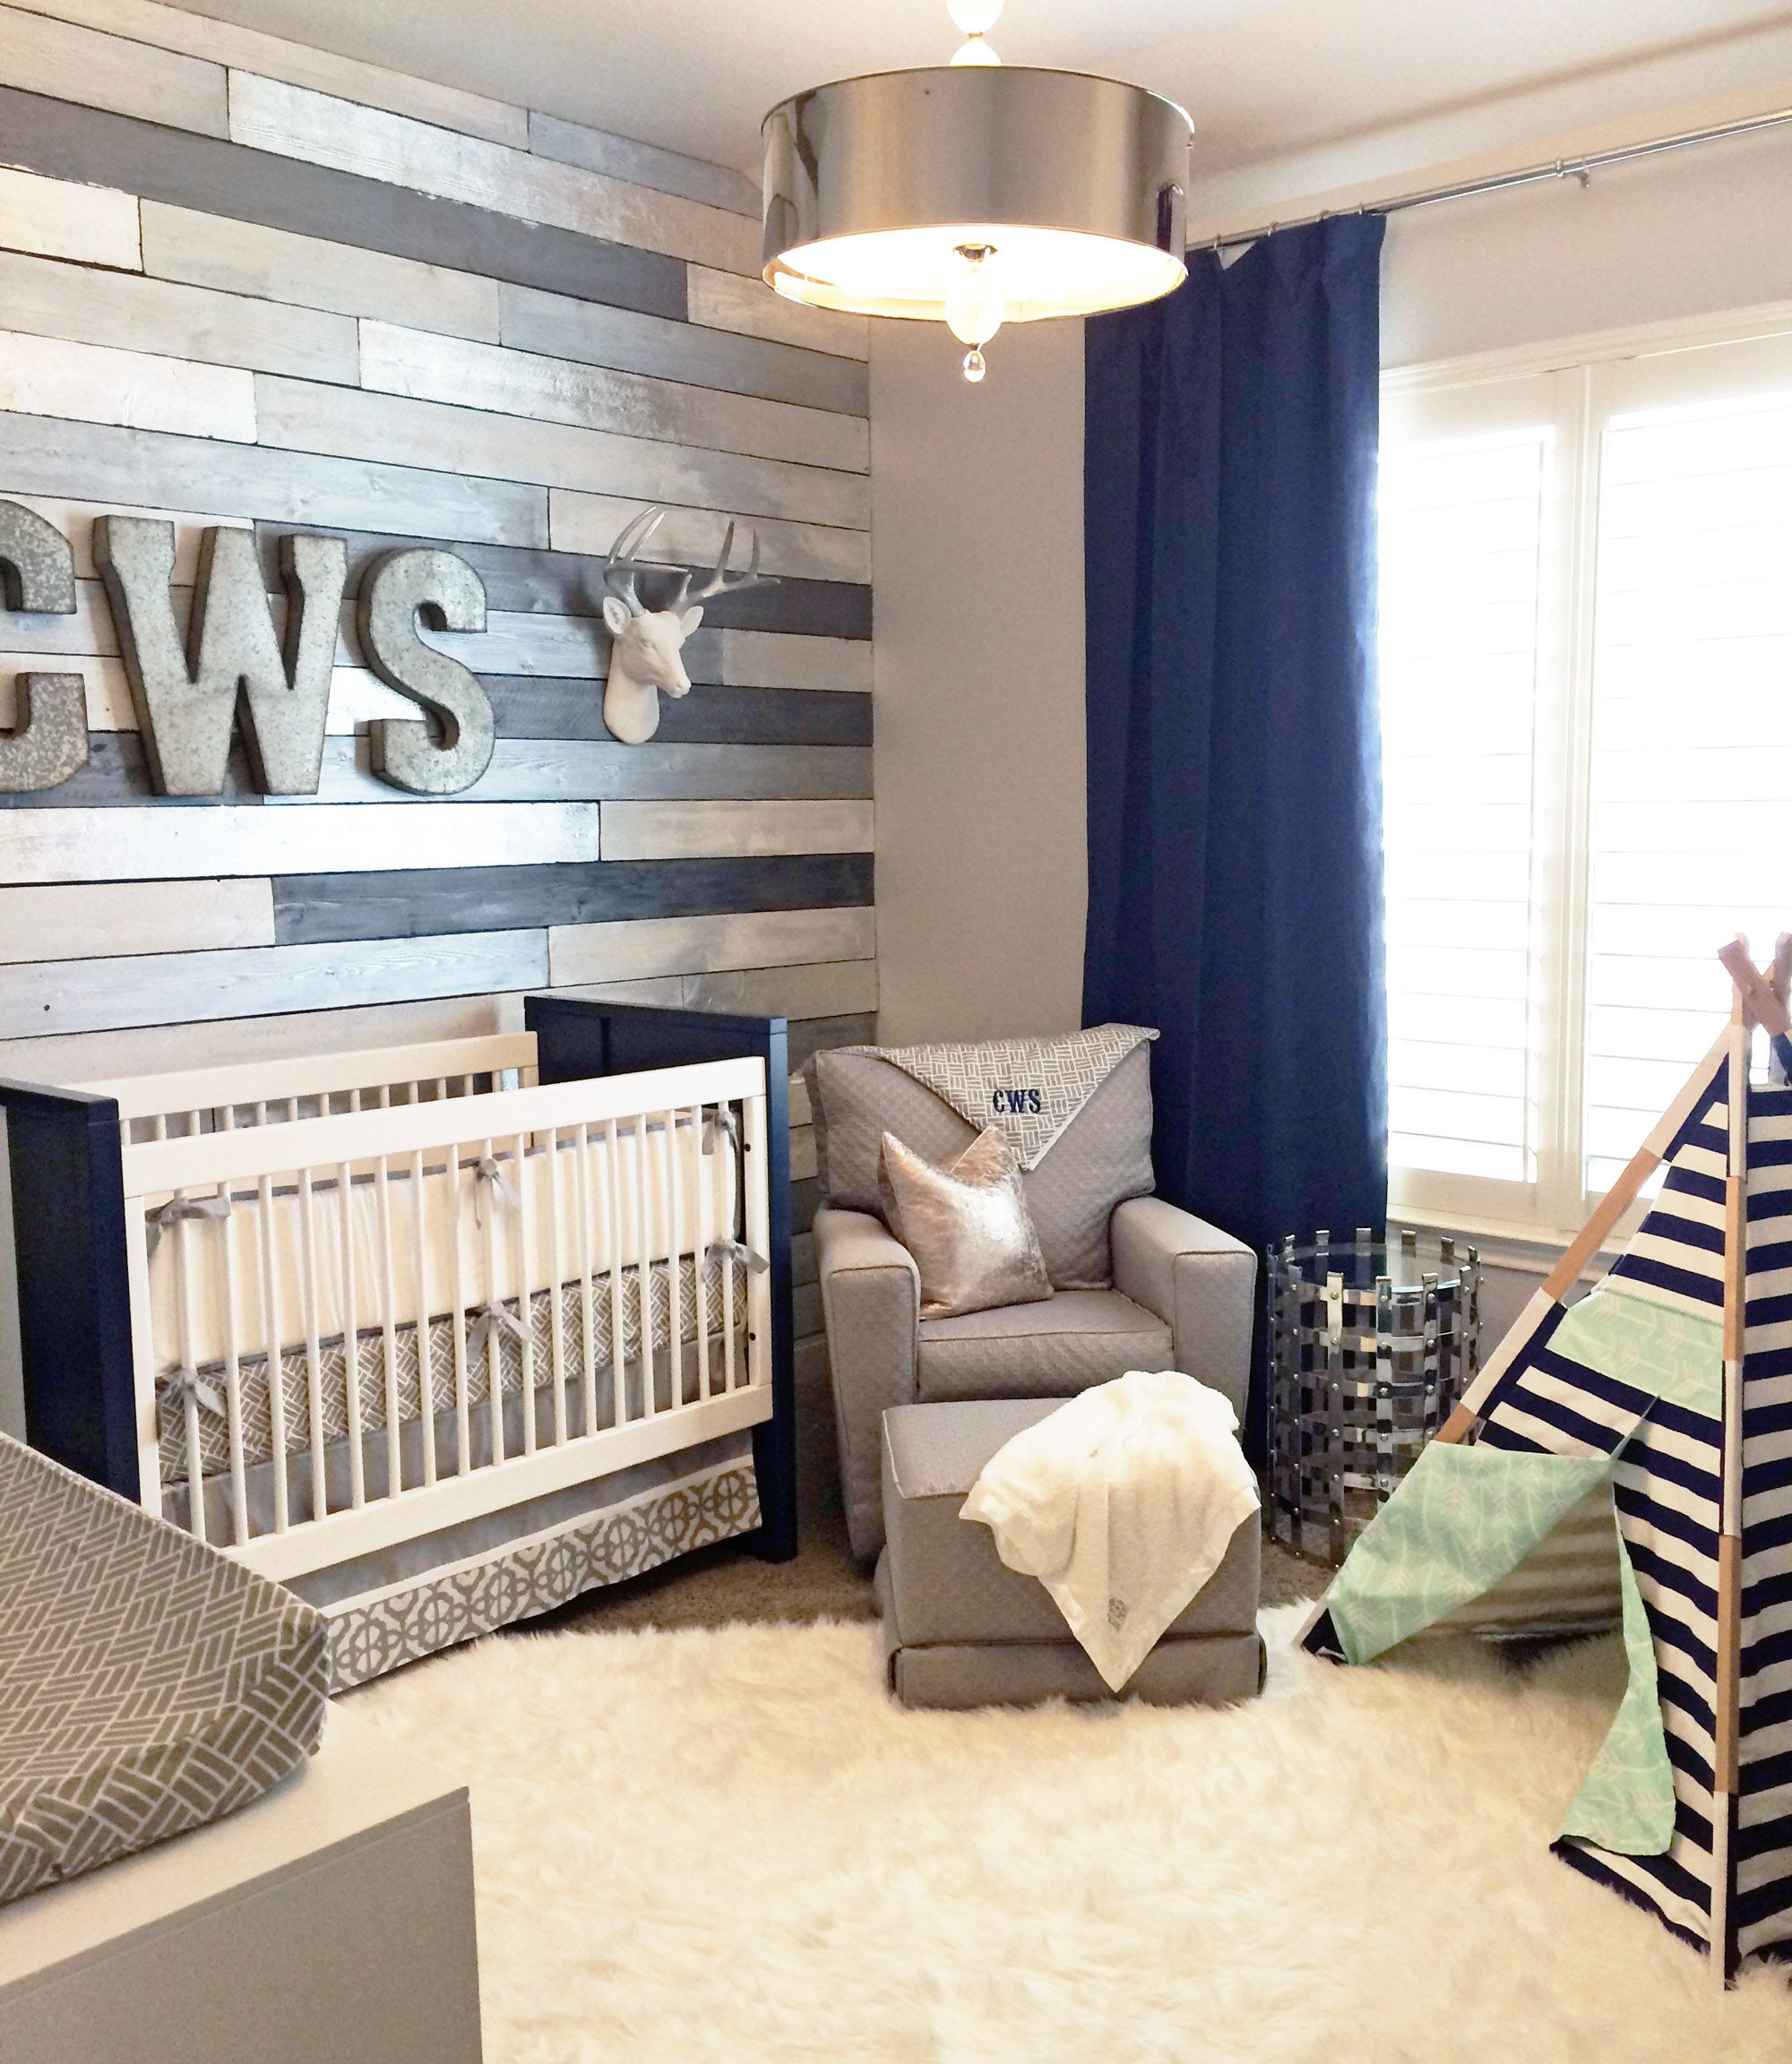 design reveal: metallic wood wall nursery | wood wall nursery